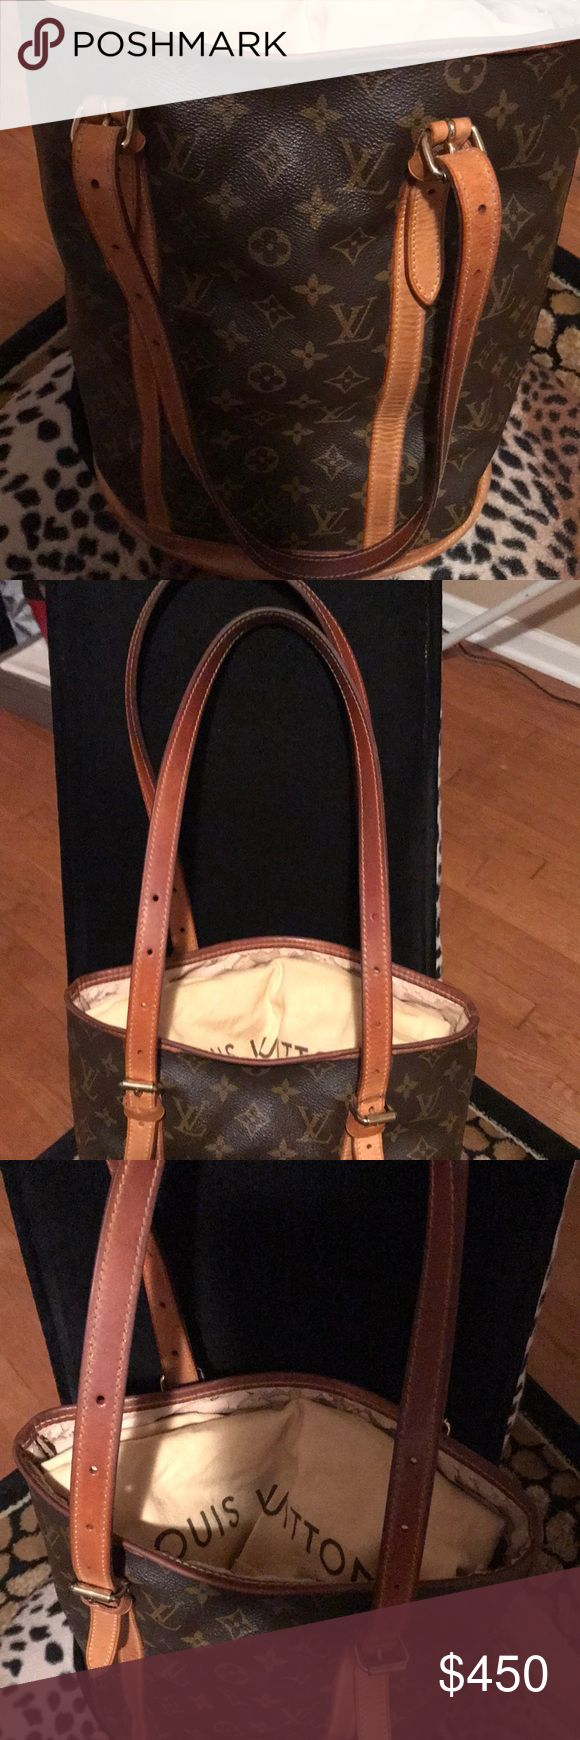 Vintage LV Large bucket handbag 100% Authentic!!  Vintage bucket bag. Wear on the inside of the rim bad. Otherwise great condition. Louis Vuitton Bags Shoulder Bags